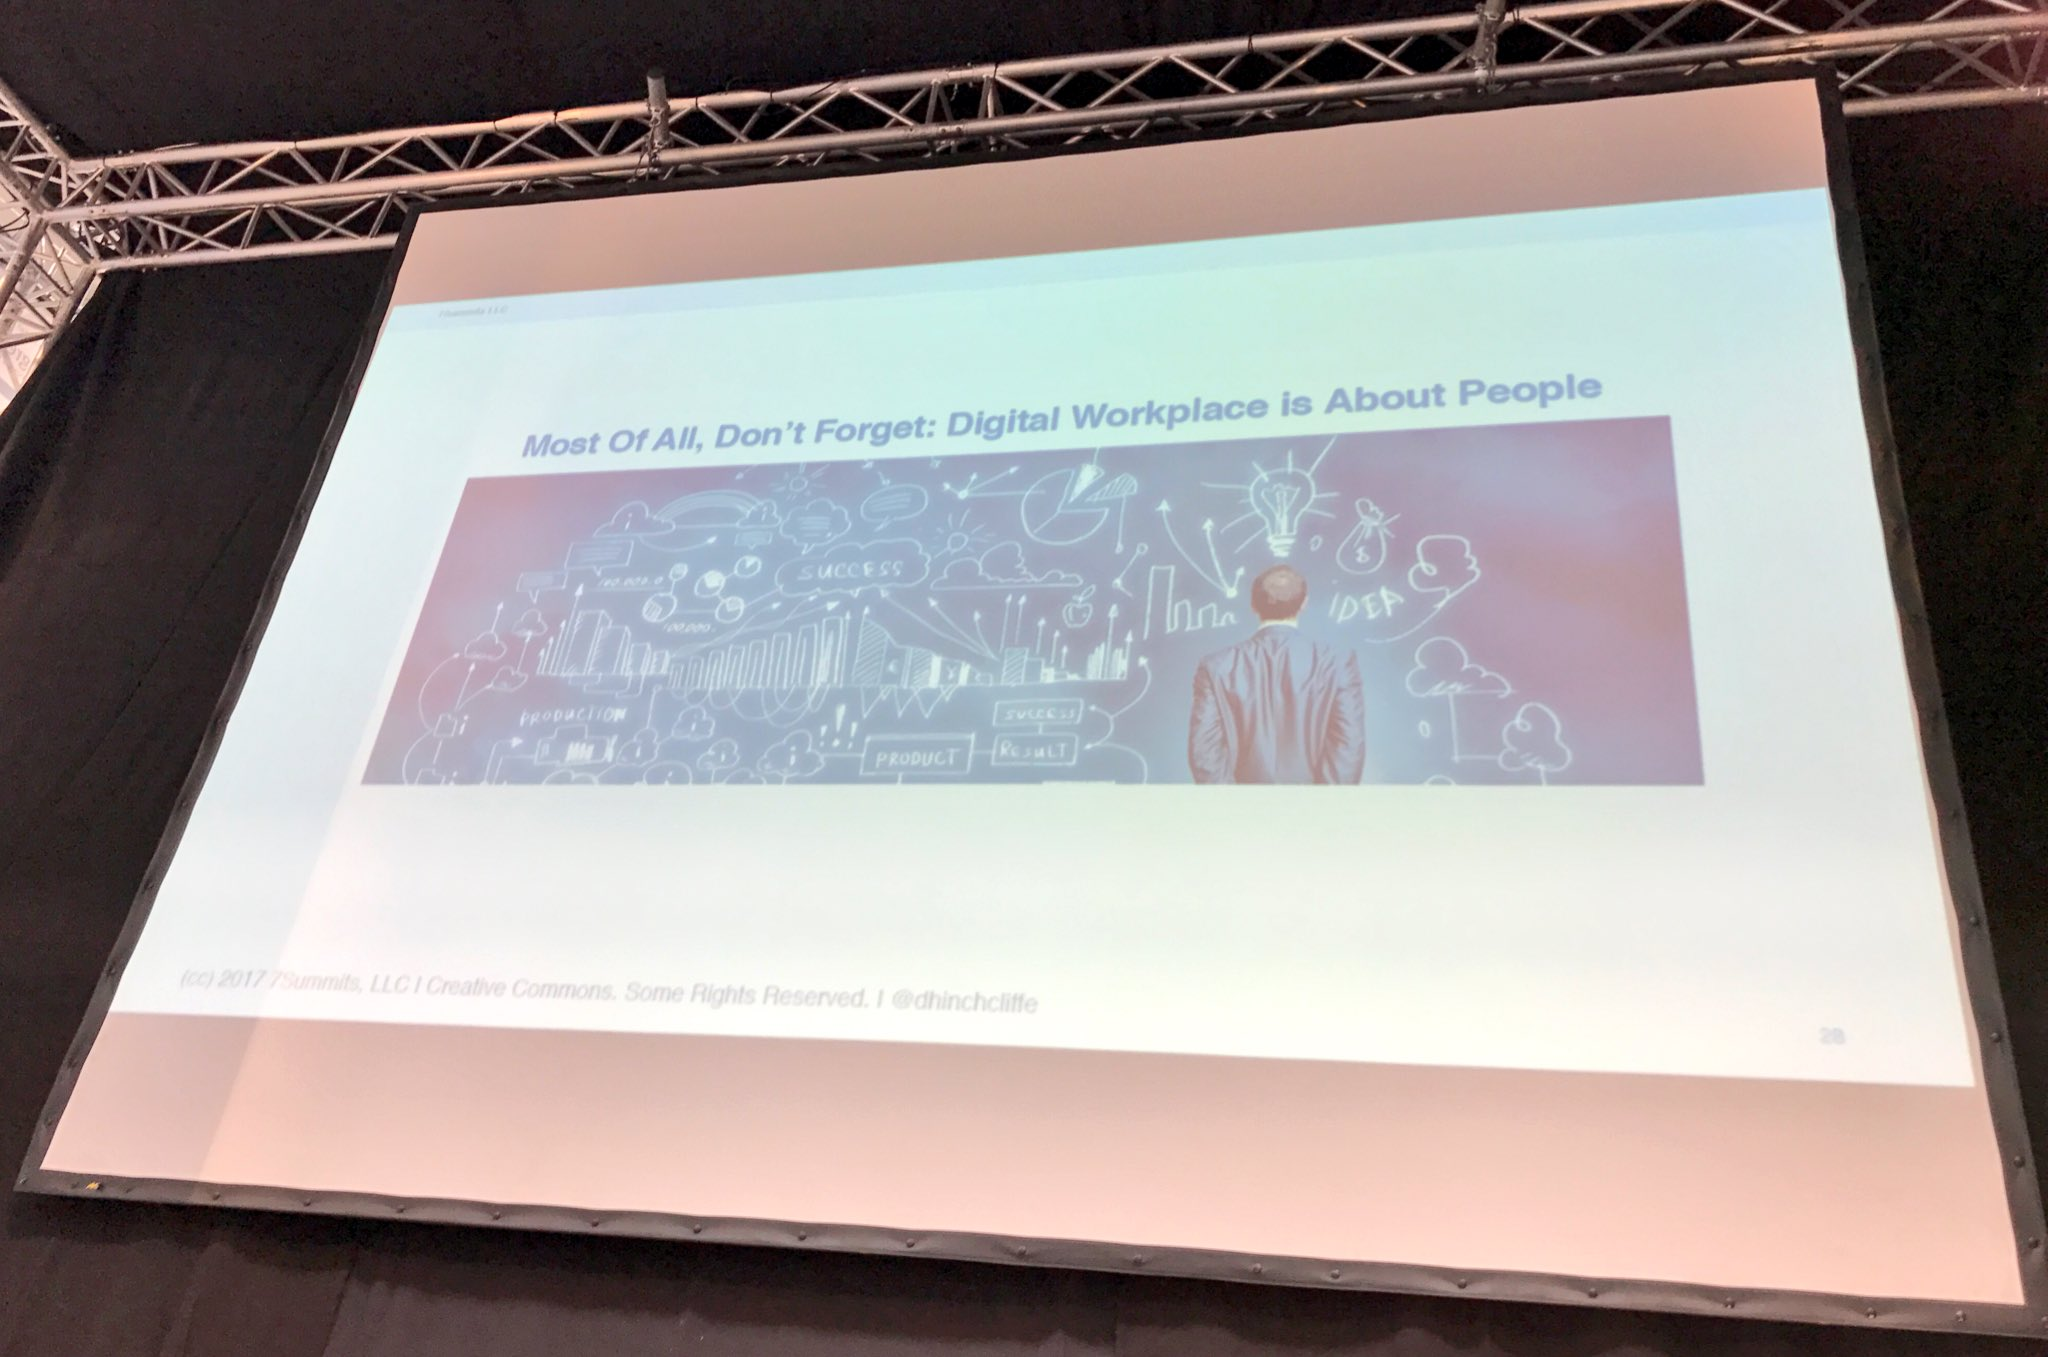 "A slide that speaks for itself: ""#DigitalWorkplace is about People"" emphasizes @dhinchcliffe #cebiteda #CeBIT17 https://t.co/VpmBd5dej0"